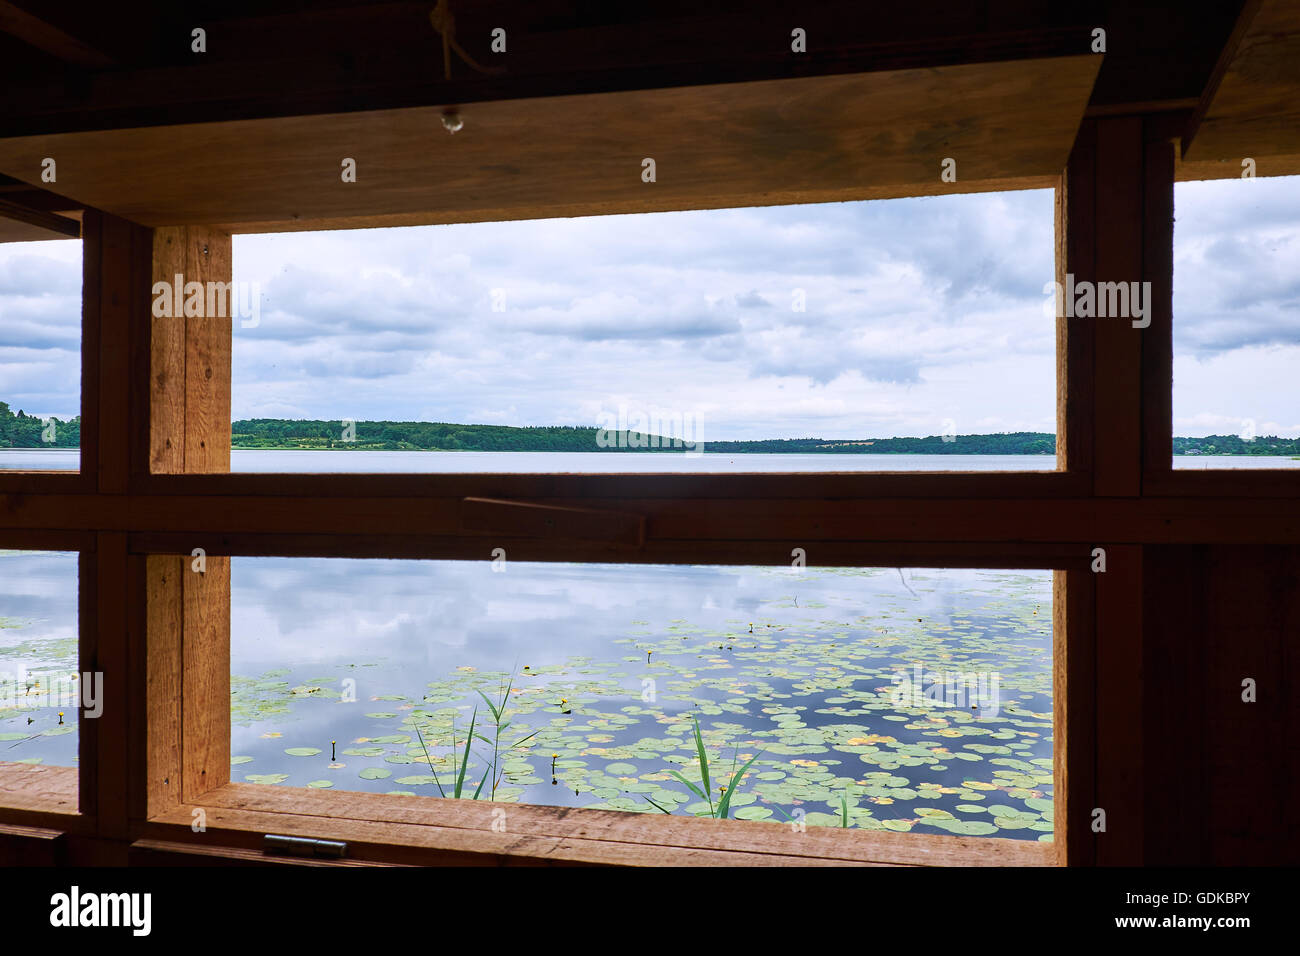 Looking out over lake Sjaelsoe, in Denmark, from within a birdwatch shed - Stock Image